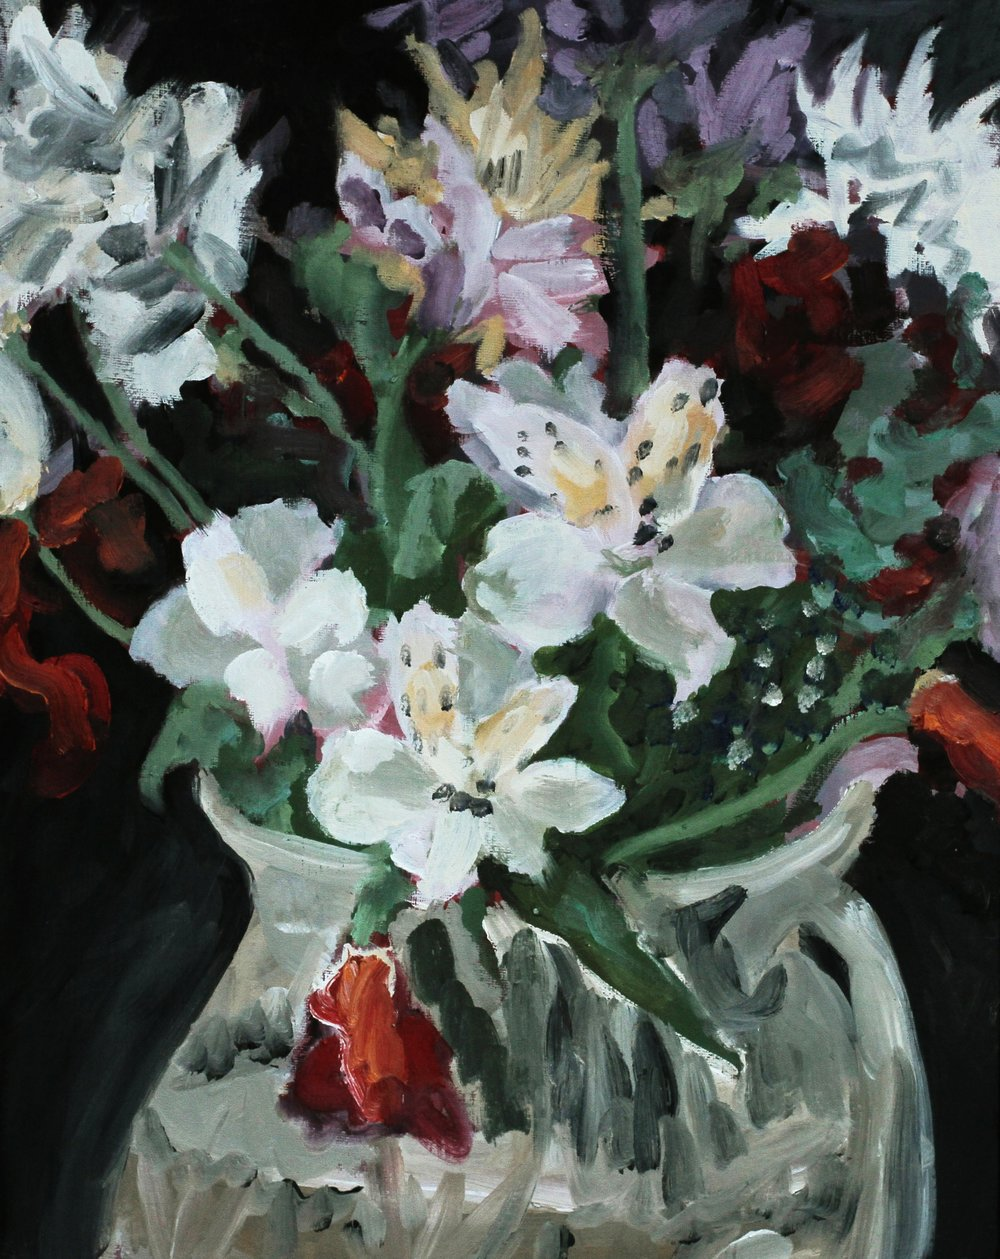 Flowers in Vase  Oil on canvas panel. 16 x 20 in. 2013